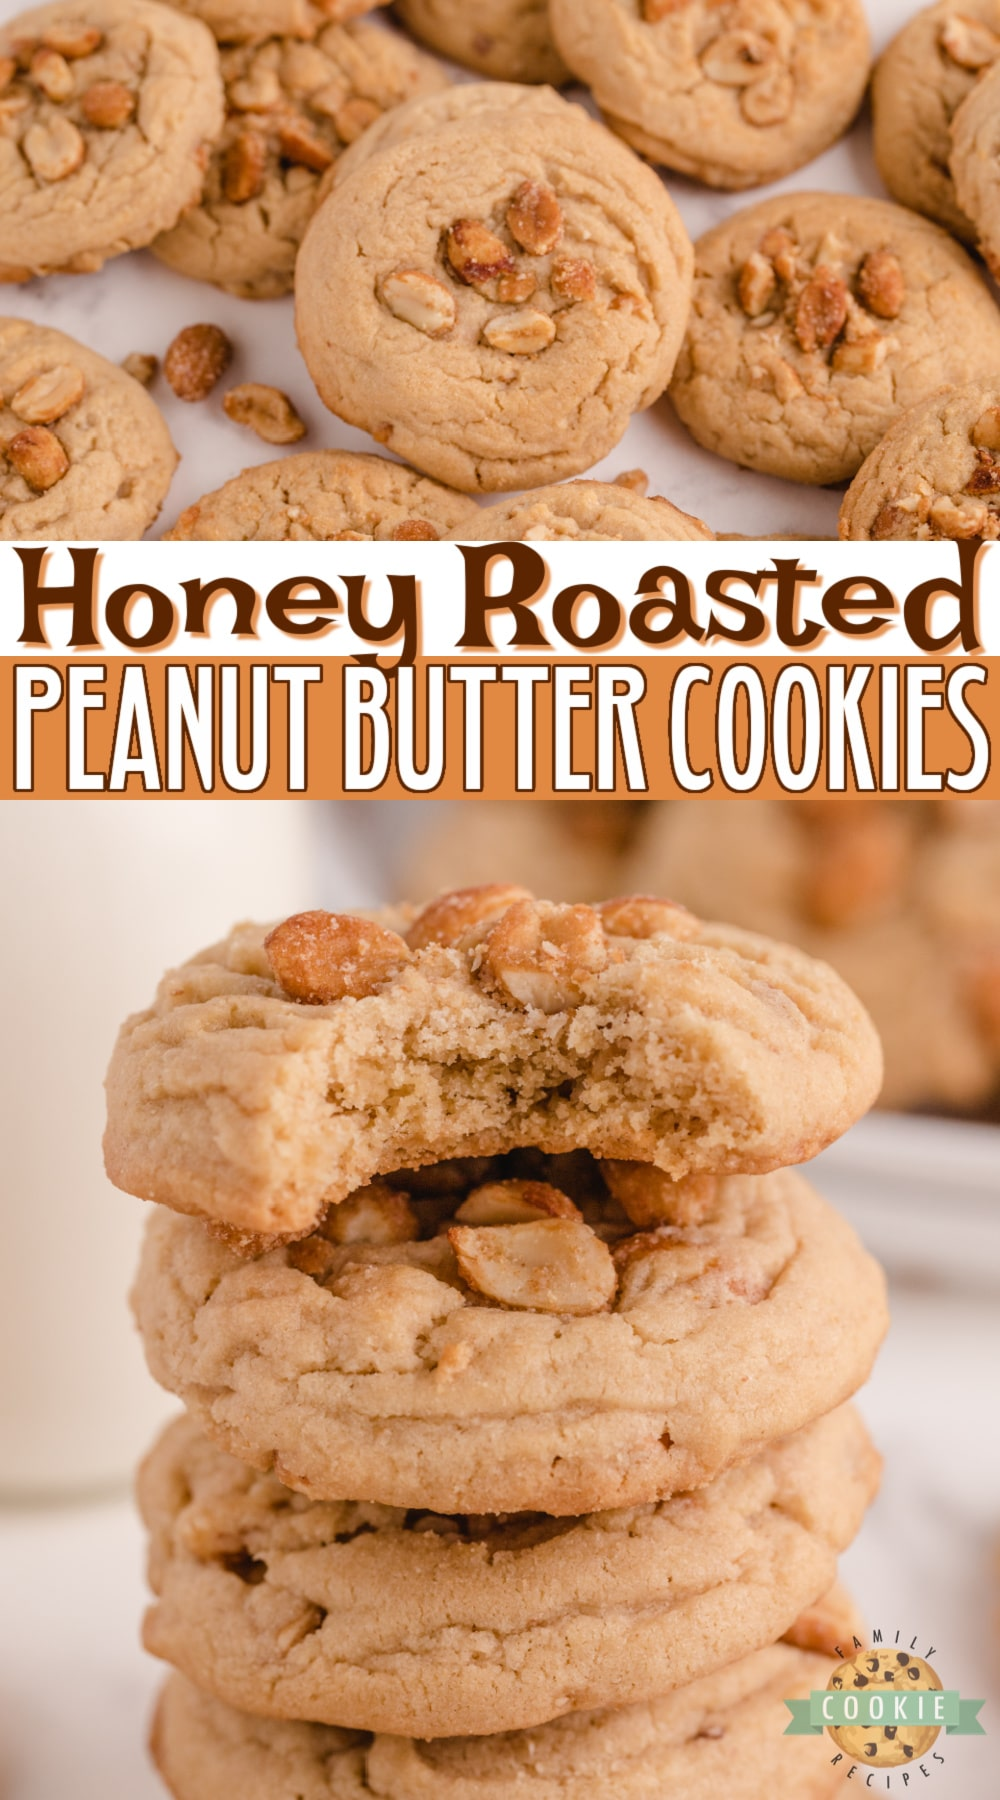 Honey Roasted Peanut Butter Cookies made with peanut butter and lots of honey roasted peanuts. Soft, chewy and delicious peanut butter cookie recipe with tons of peanut flavor! via @buttergirls